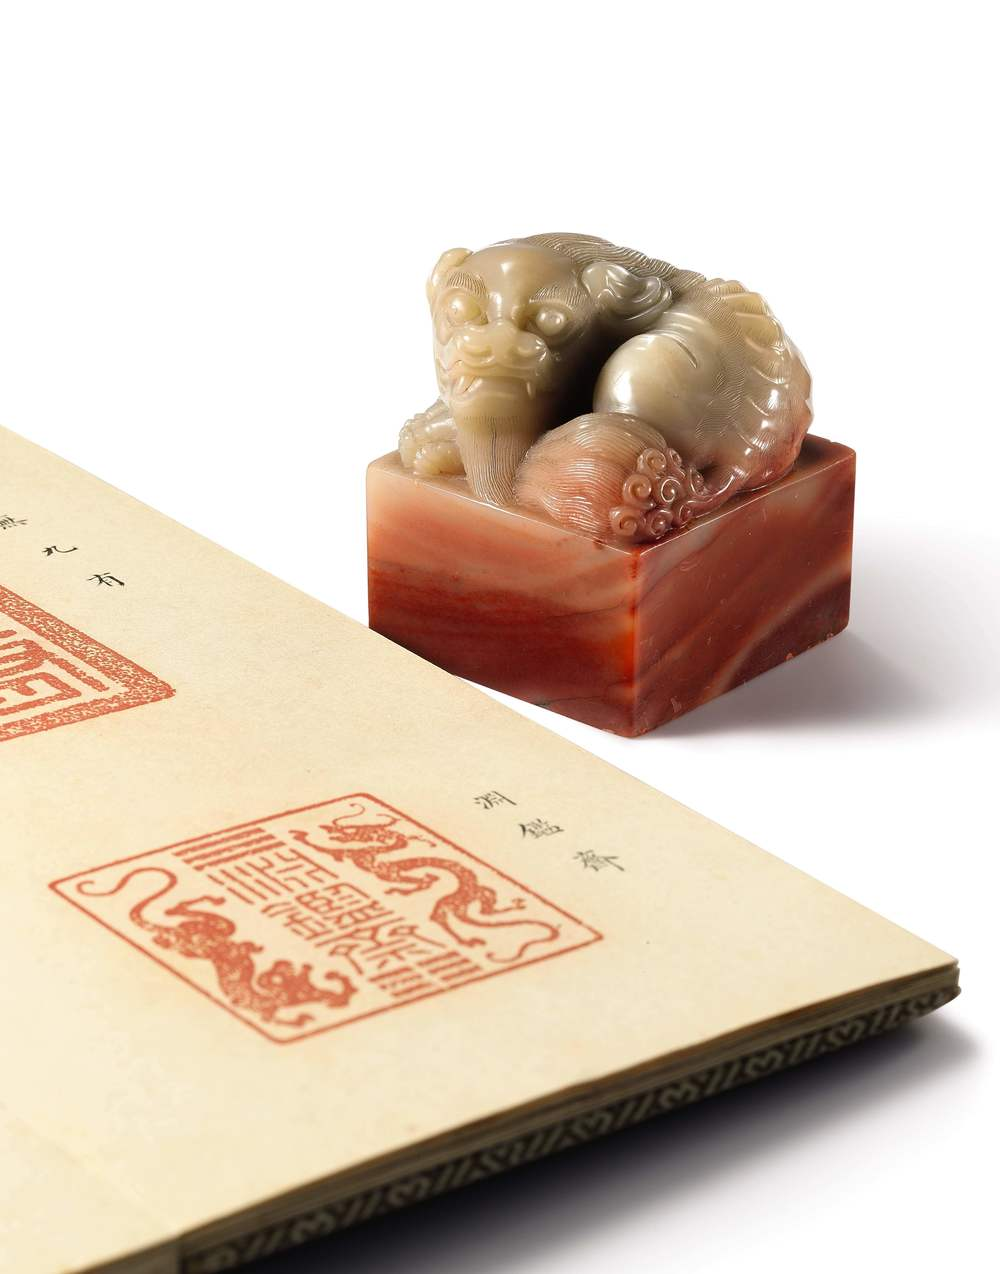 The soapstone seal is carved with the characters of the Yuanjianzhai ('Studio of Profound Discernment), the Kangxi Emperor's favourite personal retreat in the Imperial gardens northwest of Beijing, the studio where he cultivated his passion for calligraphy and research into Western science and art. The carving is of superlative quality, and is exceptional for featuring a dragon and a tiger in addition to mystical trigrams, a specific combination for evoking his status as the unsurpassed ruler of heaven and earth. The unusual positioning of the seal text between double dragons on this seal is a feature that was specifically commented on by Jean-François Gerbillon, the famous Jesuit missionary and close confidant of the emperor, when he was invited to inspect the Emperor's seals in 1690 in the Yangxindian. (Image: Sotheby's)